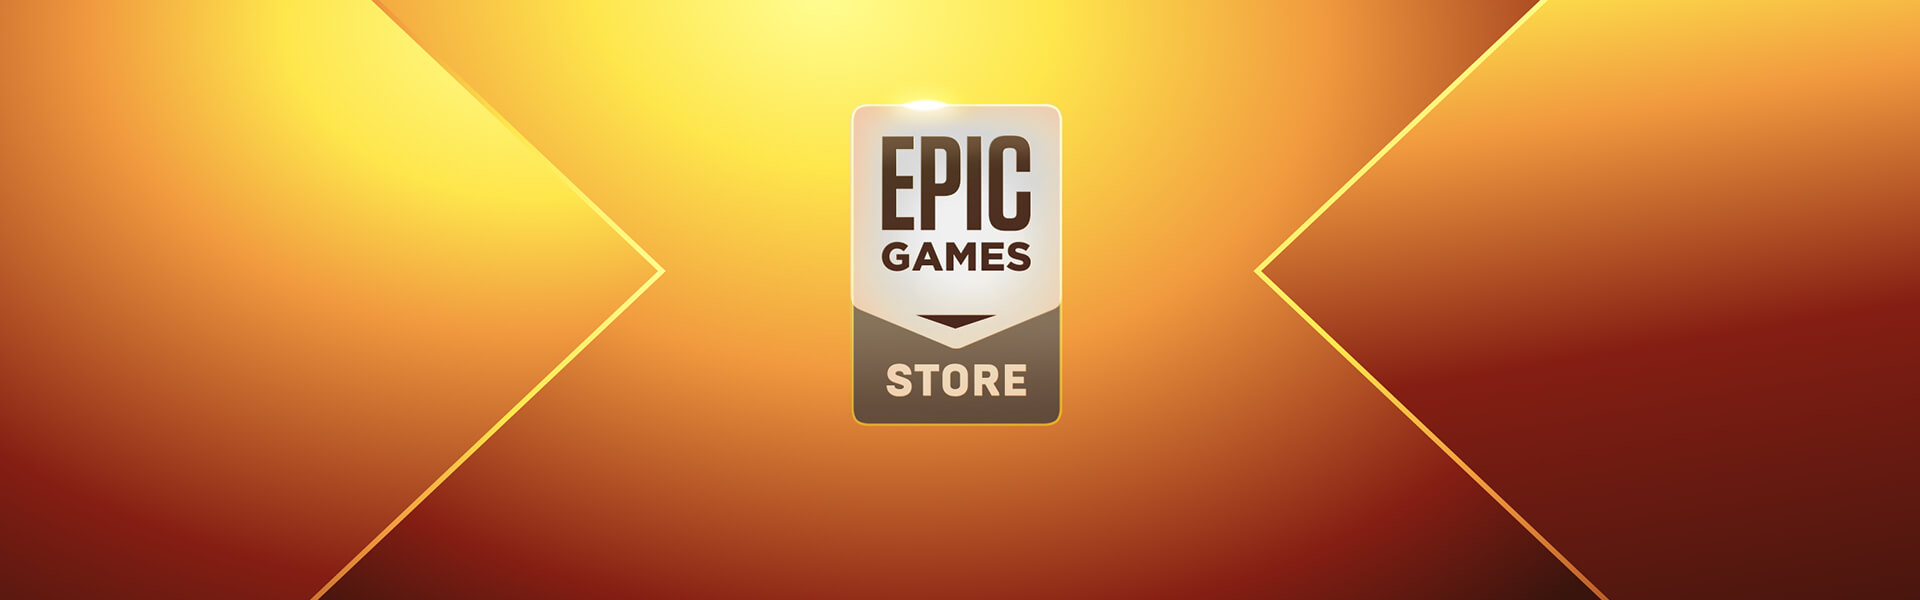 Epic Games Store logo against a deep orange and yellow gradient